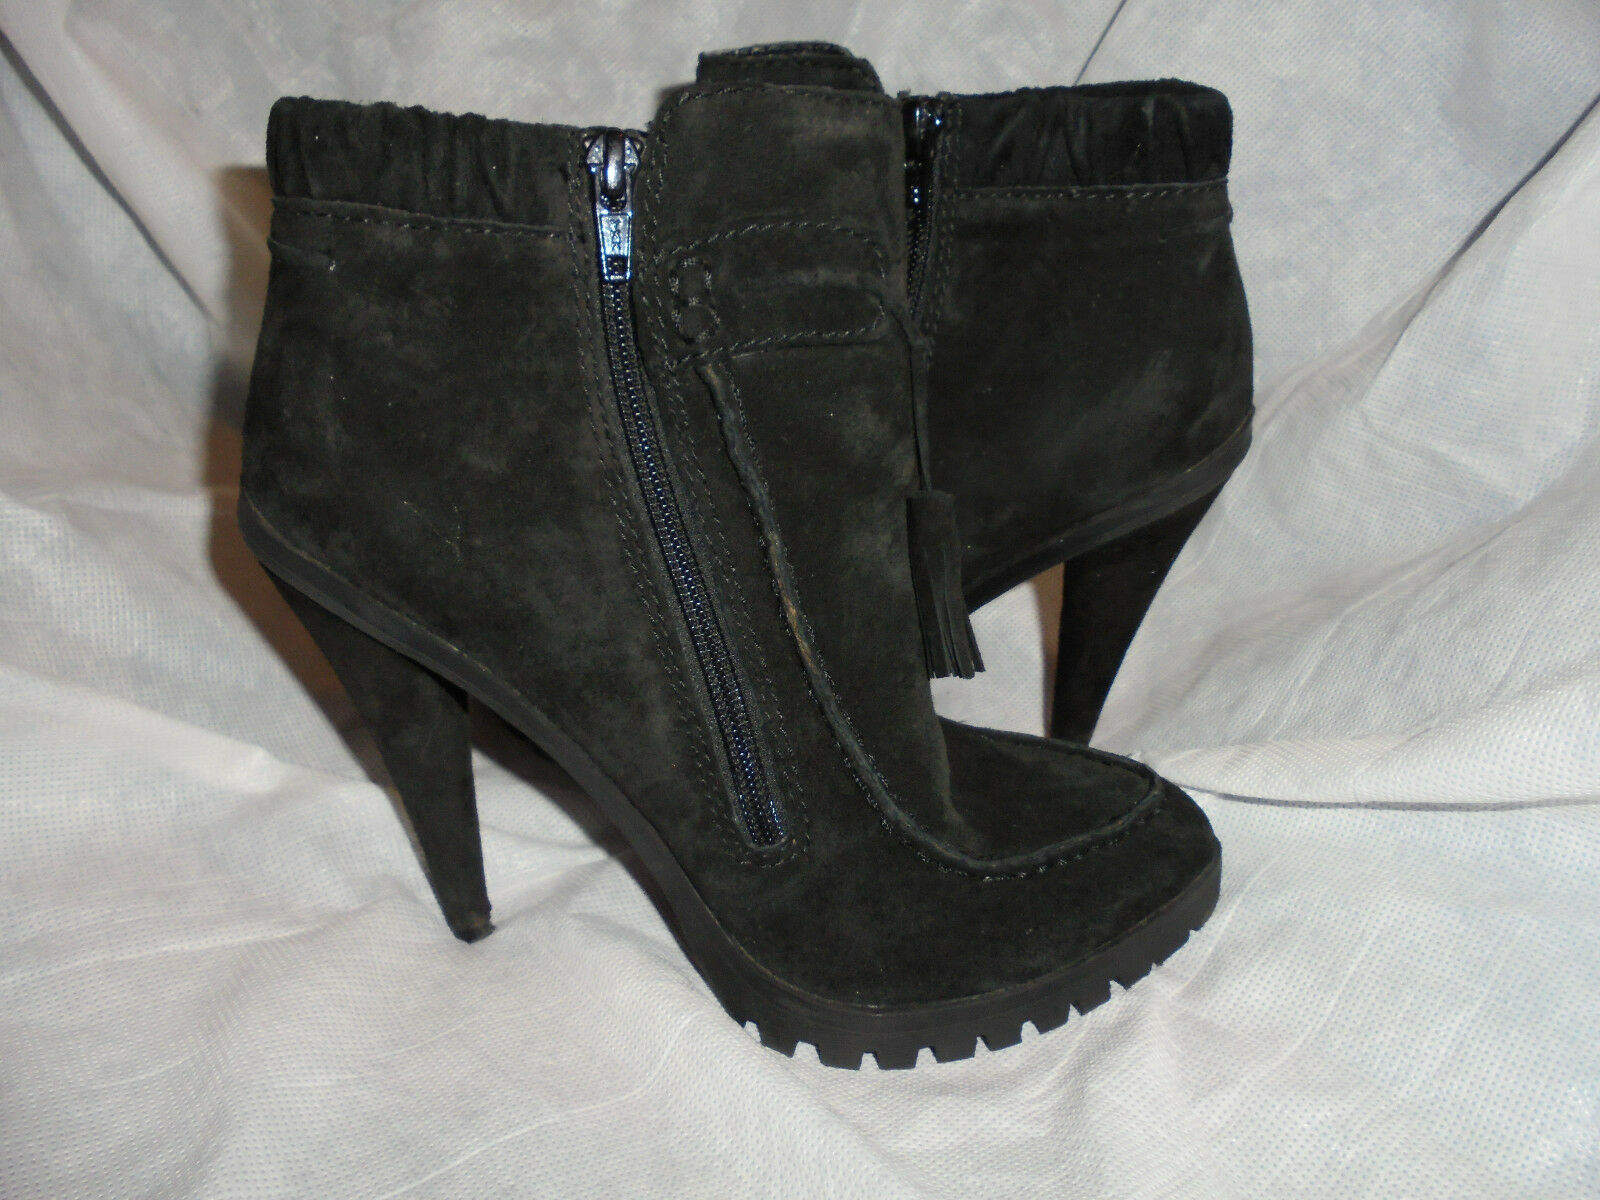 KG BY KURT GEIGER WOMEN BLACK SUEDE LEATHER SIZE ZIP ANKLE BOOT  SIZE LEATHER UK 5 EU 38 VGC 176424